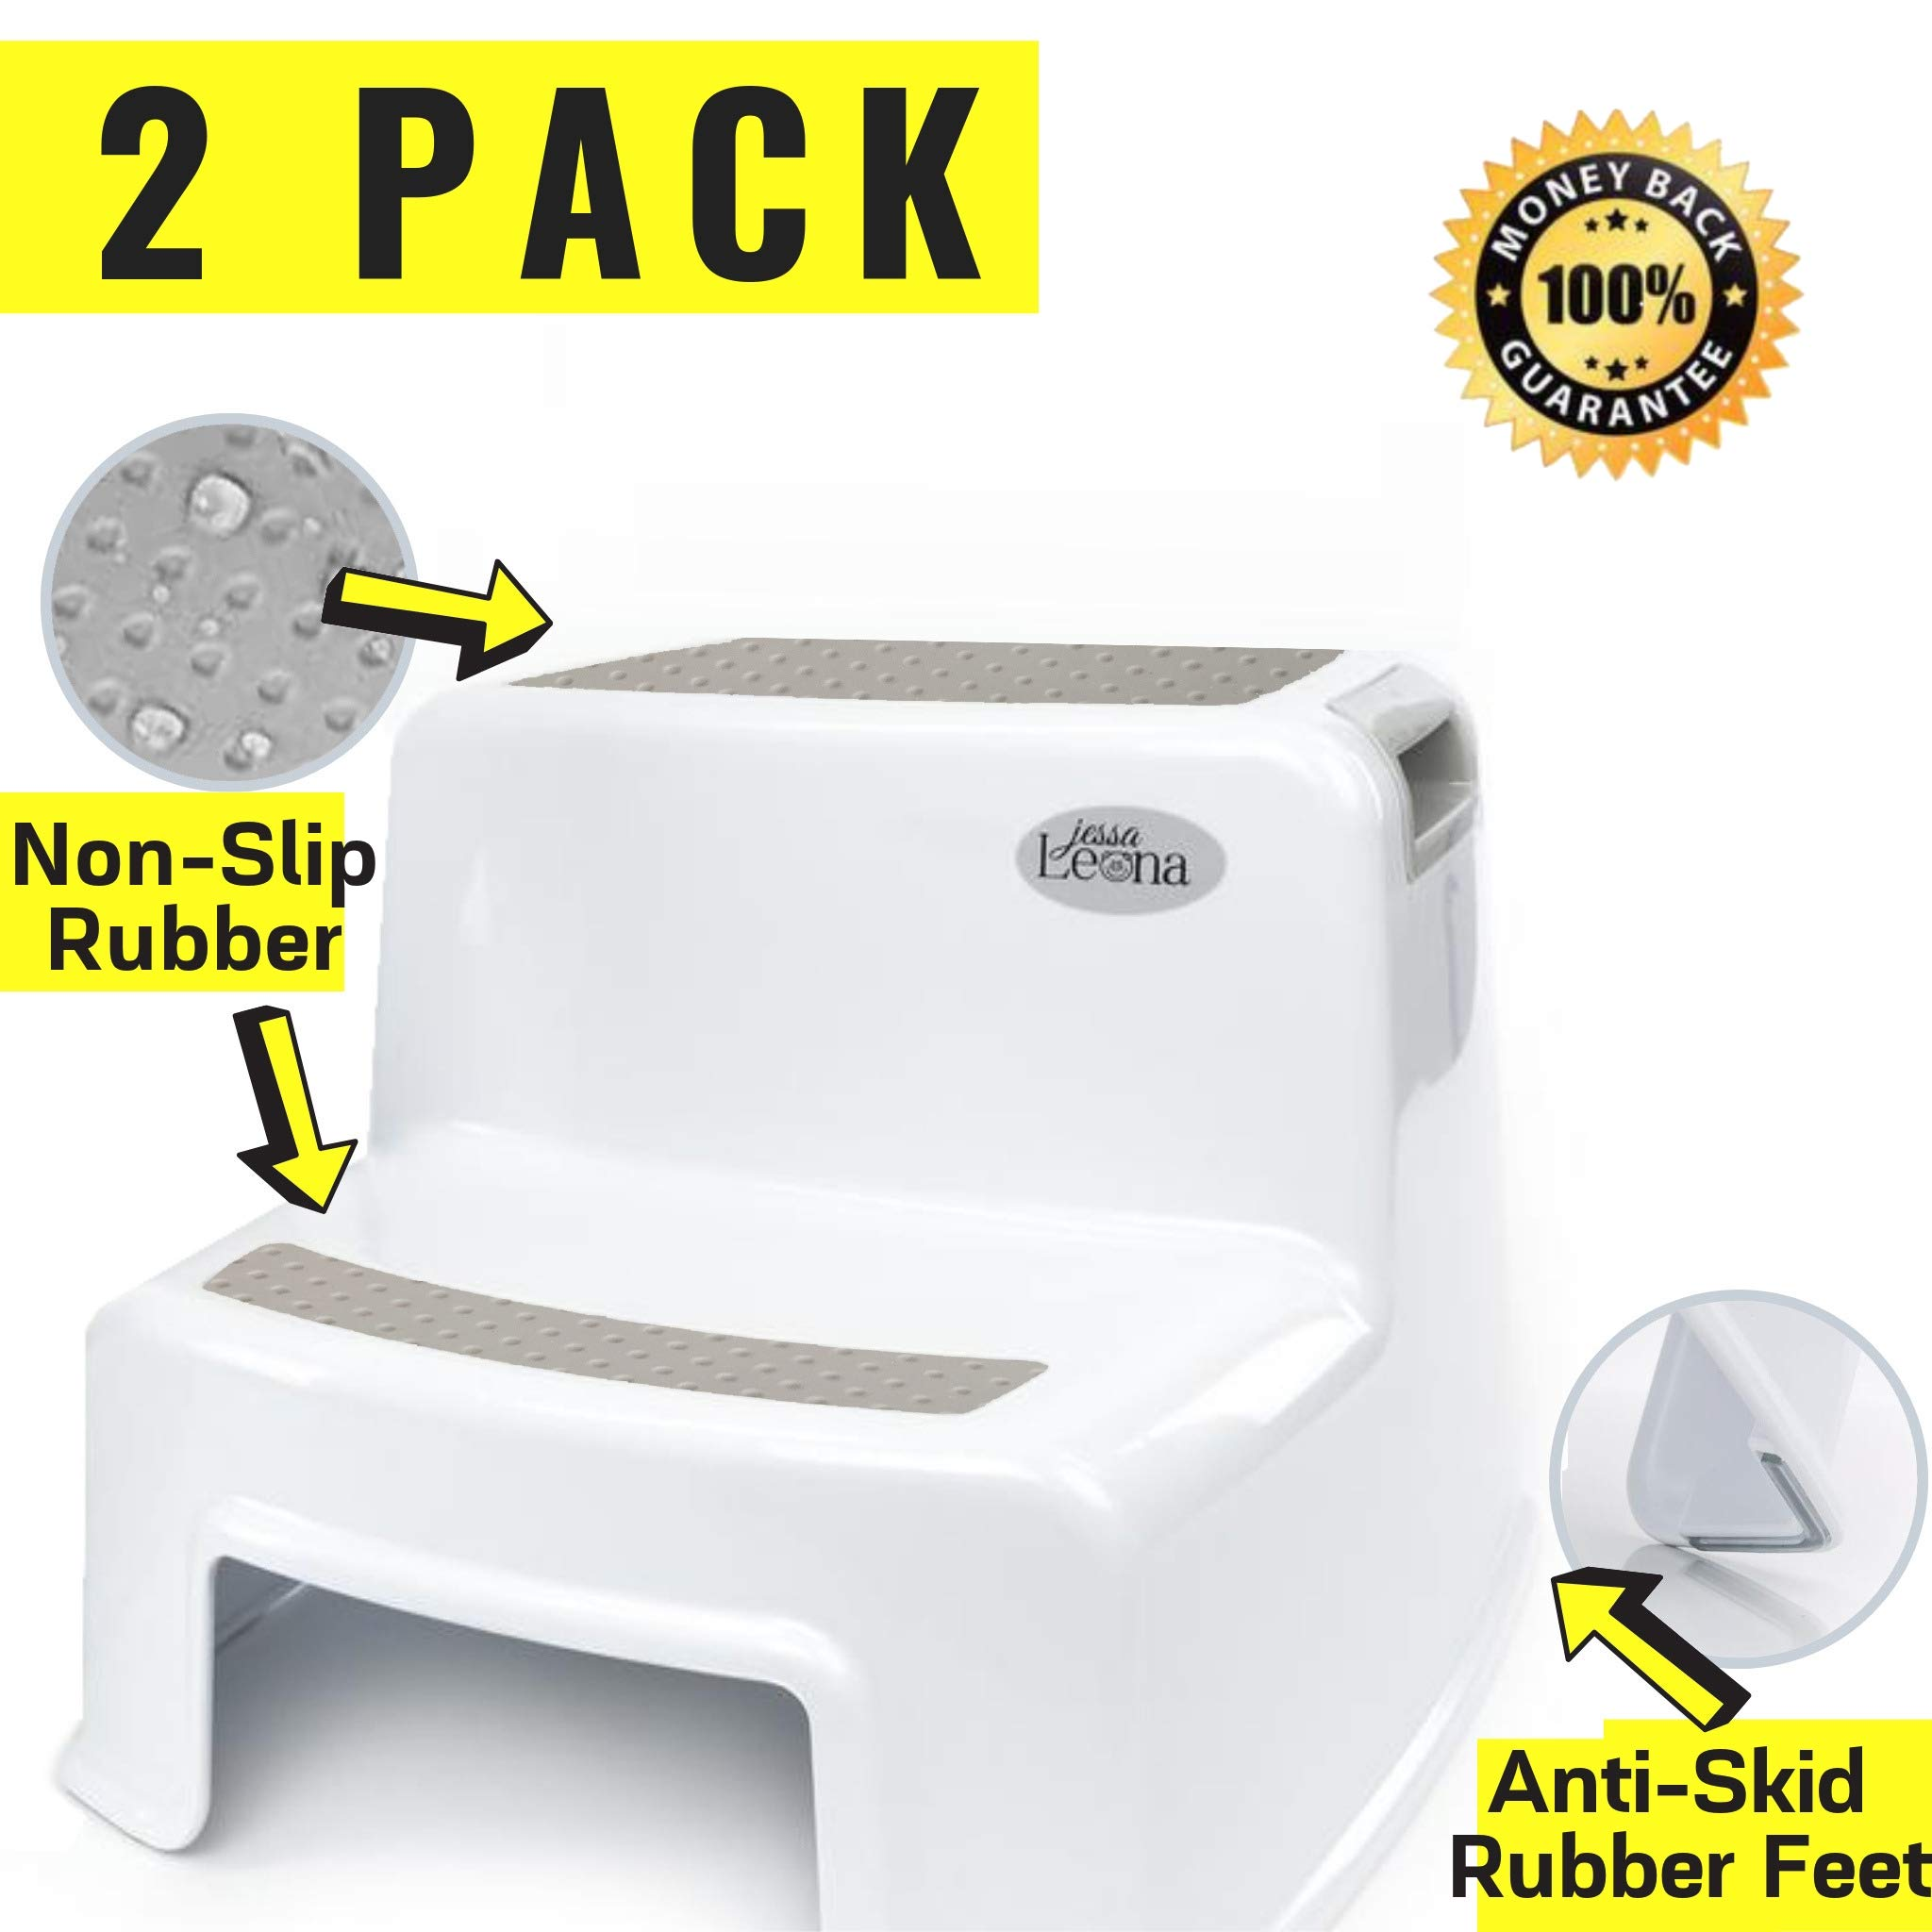 2 Pack 2 Step Stool for Kids | Toddler Stool for Potty Training and Use in The Bathroom or Kitchen | Wide Two Step Design for Growing Children | BPA Free Soft-Grip Steps for Comfort and S by Secure Home by Jessa Leona